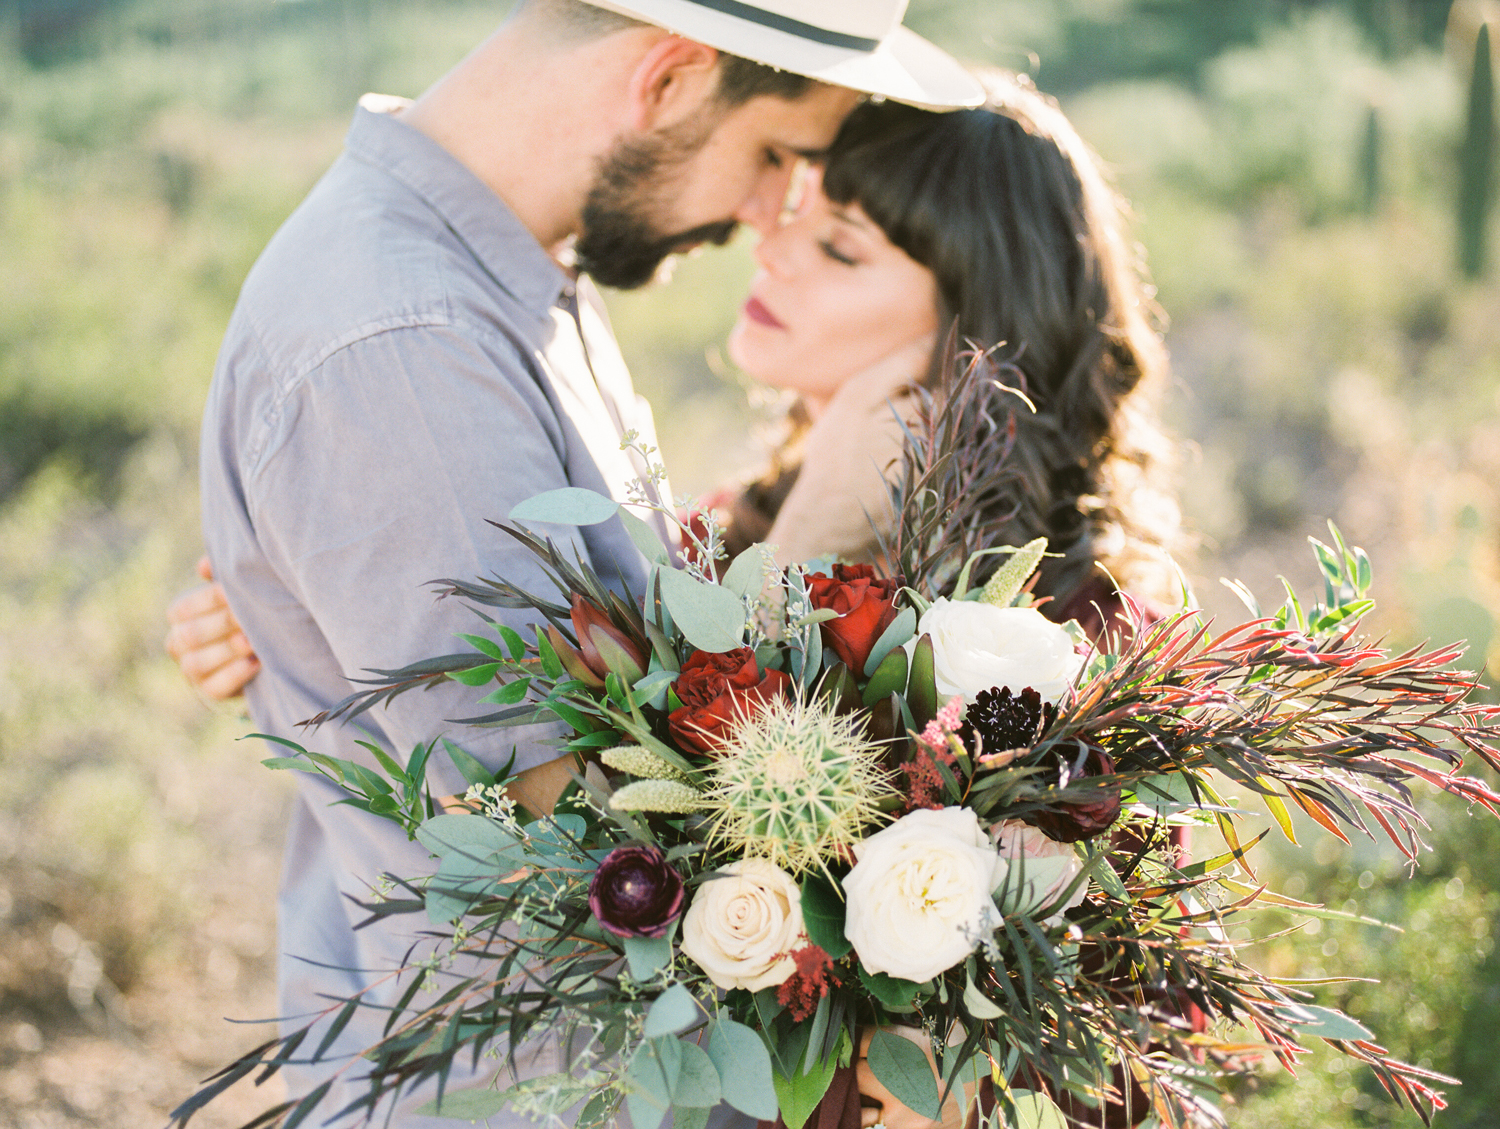 Fall bridal bouquet with cactus, roses & greenery